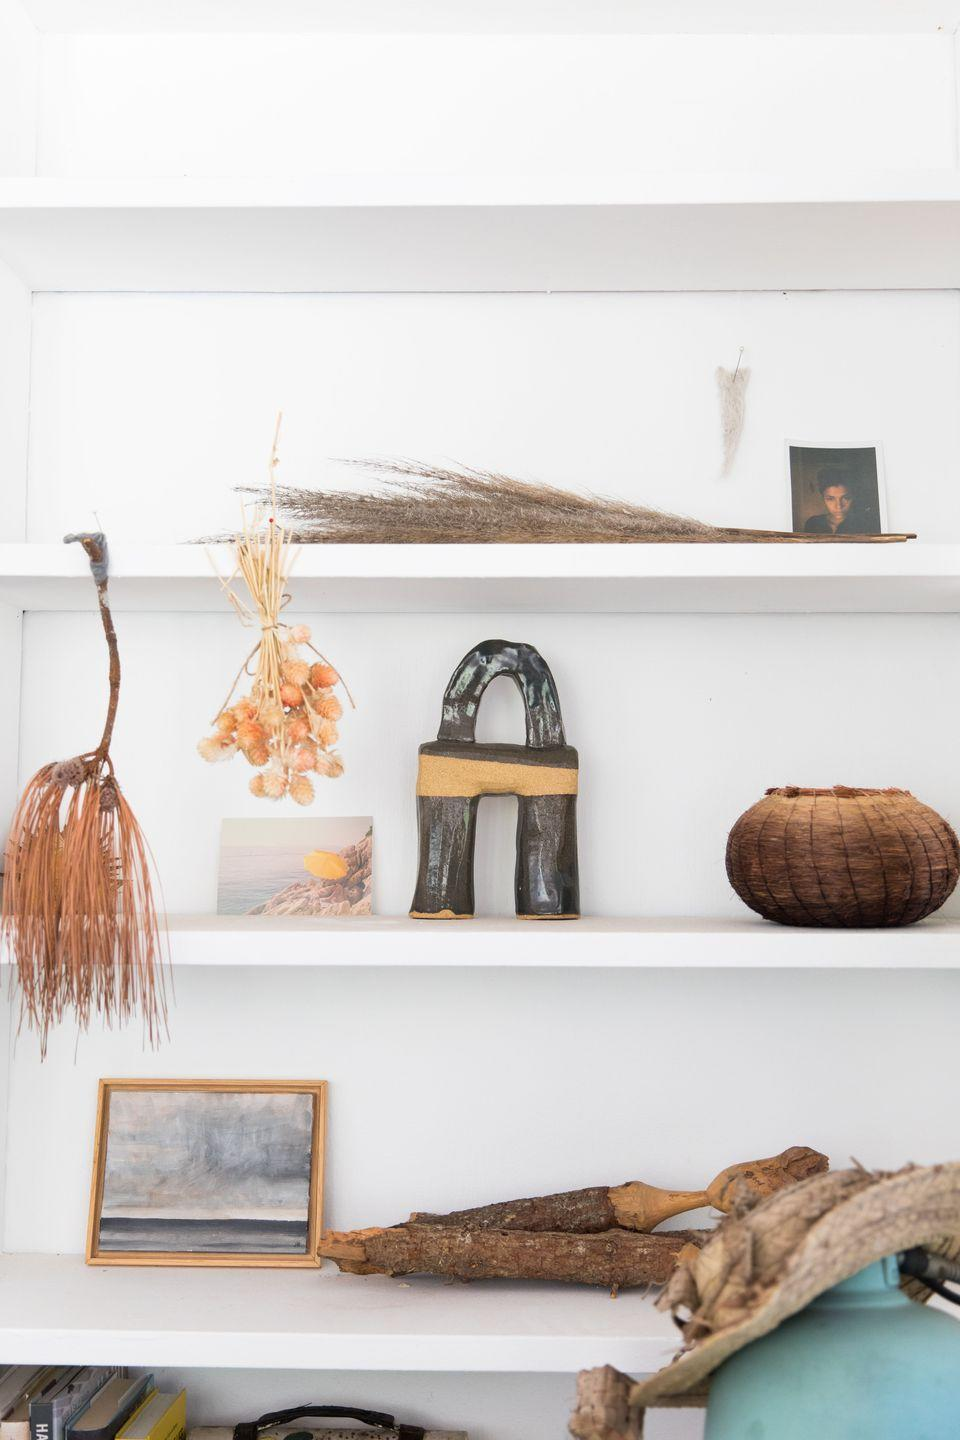 """<p>""""Some of my studio details... I am a collector of earthly objects with subtle tones and wild structures, I like to showcase them on the shelves around me as I work. I'm obsessed with nature's ability to showcase organised chaos, subtle colours and shading. The painting is by John Rapp, the sculpture by <a href=""""https://urldefense.com/v3/__https://www.beautifulnomad.com__;!!Ivohdkk!zWCIBW6SGBfMP6Z_LK_rXjTrXML7Pm1ZrMoo8qQILMpX4GfmM9xXWUT_Nji-Cx6BC_pJ8S55-J95AQ$"""" rel=""""nofollow noopener"""" target=""""_blank"""" data-ylk=""""slk:Beautiful Nomad"""" class=""""link rapid-noclick-resp"""">Beautiful Nomad</a> , and the basket by <a href=""""https://urldefense.com/v3/__http://adcockstudios.com__;!!Ivohdkk!zWCIBW6SGBfMP6Z_LK_rXjTrXML7Pm1ZrMoo8qQILMpX4GfmM9xXWUT_Nji-Cx6BC_pJ8S6jYMiAFQ$"""" rel=""""nofollow noopener"""" target=""""_blank"""" data-ylk=""""slk:Christine Adcock"""" class=""""link rapid-noclick-resp"""">Christine Adcock</a>. I carved the wooden faced sculptures myself.""""</p>"""